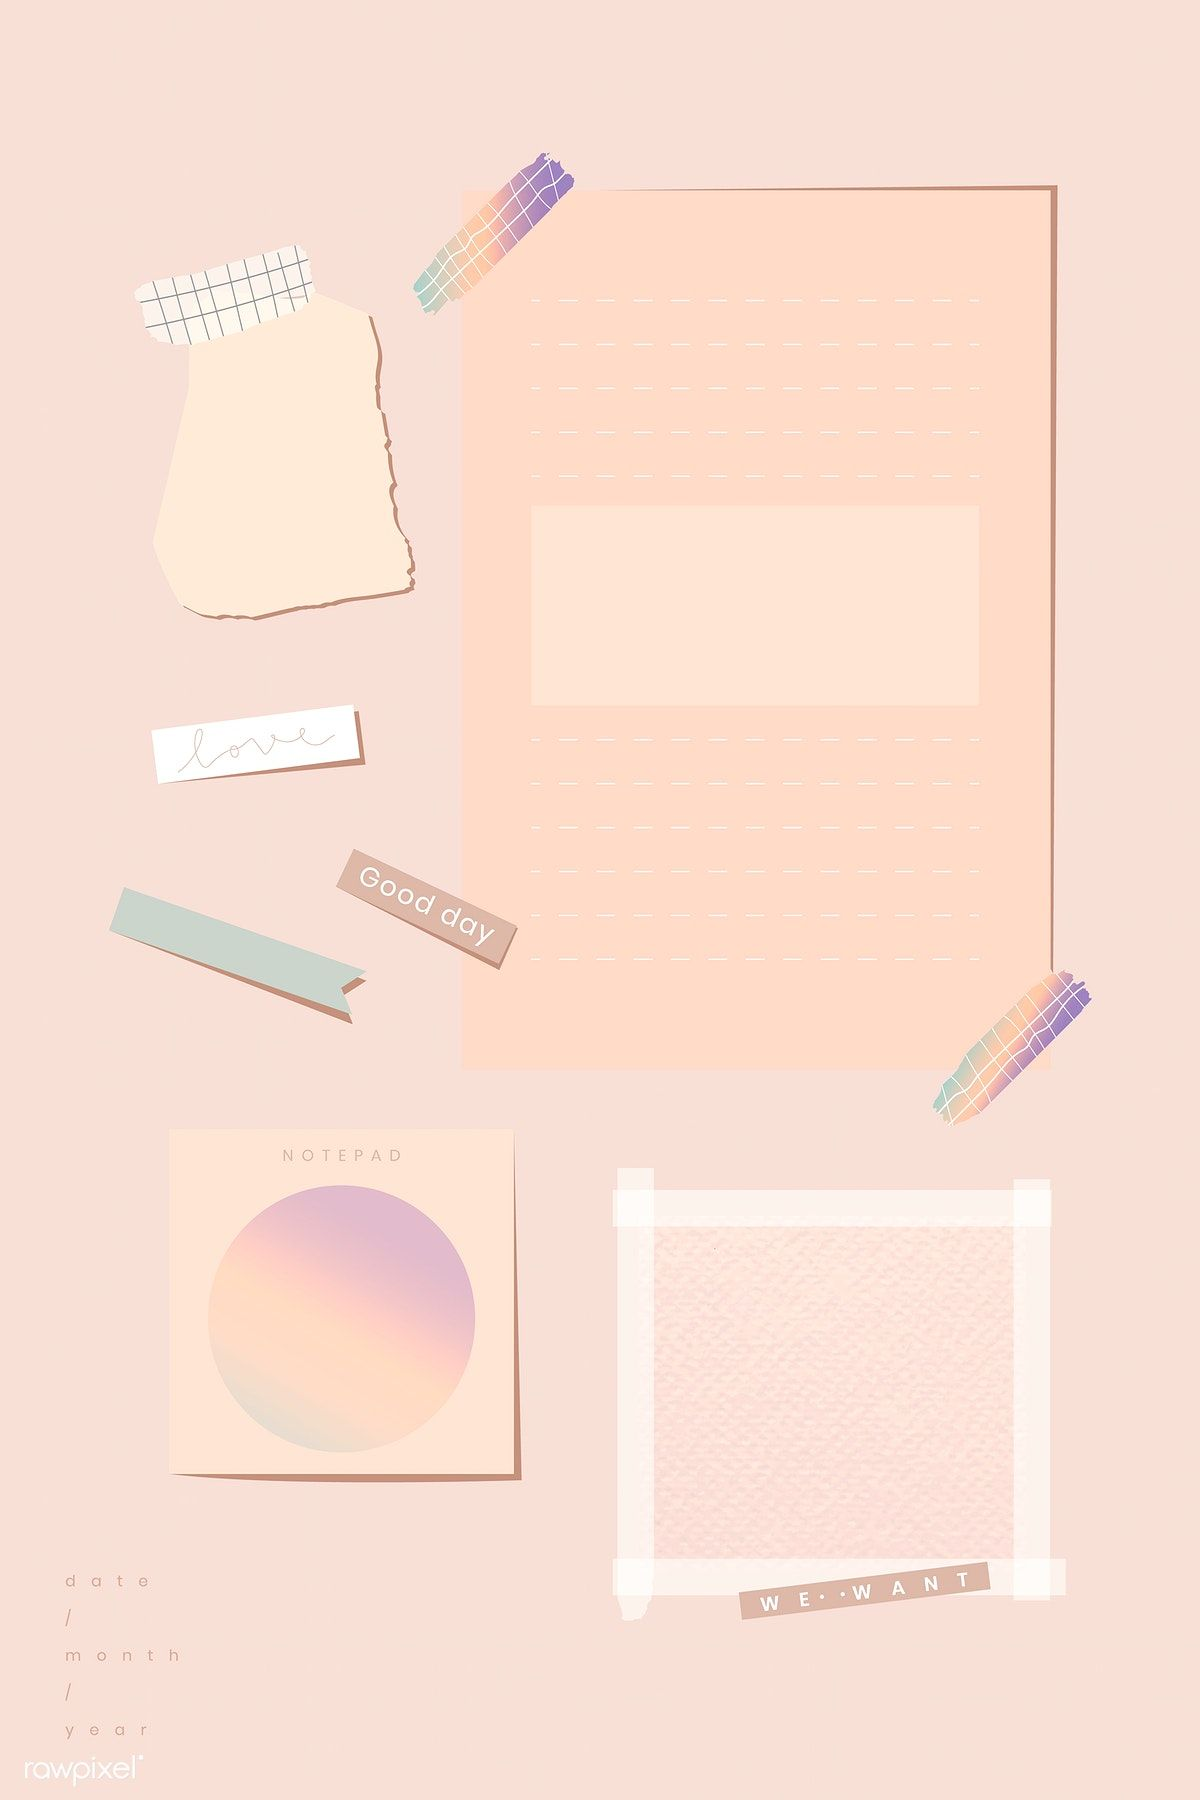 Download Premium Vector Of Blank Pastel Orange Picture Collage Template Collage Template Frame Template Picture Collage